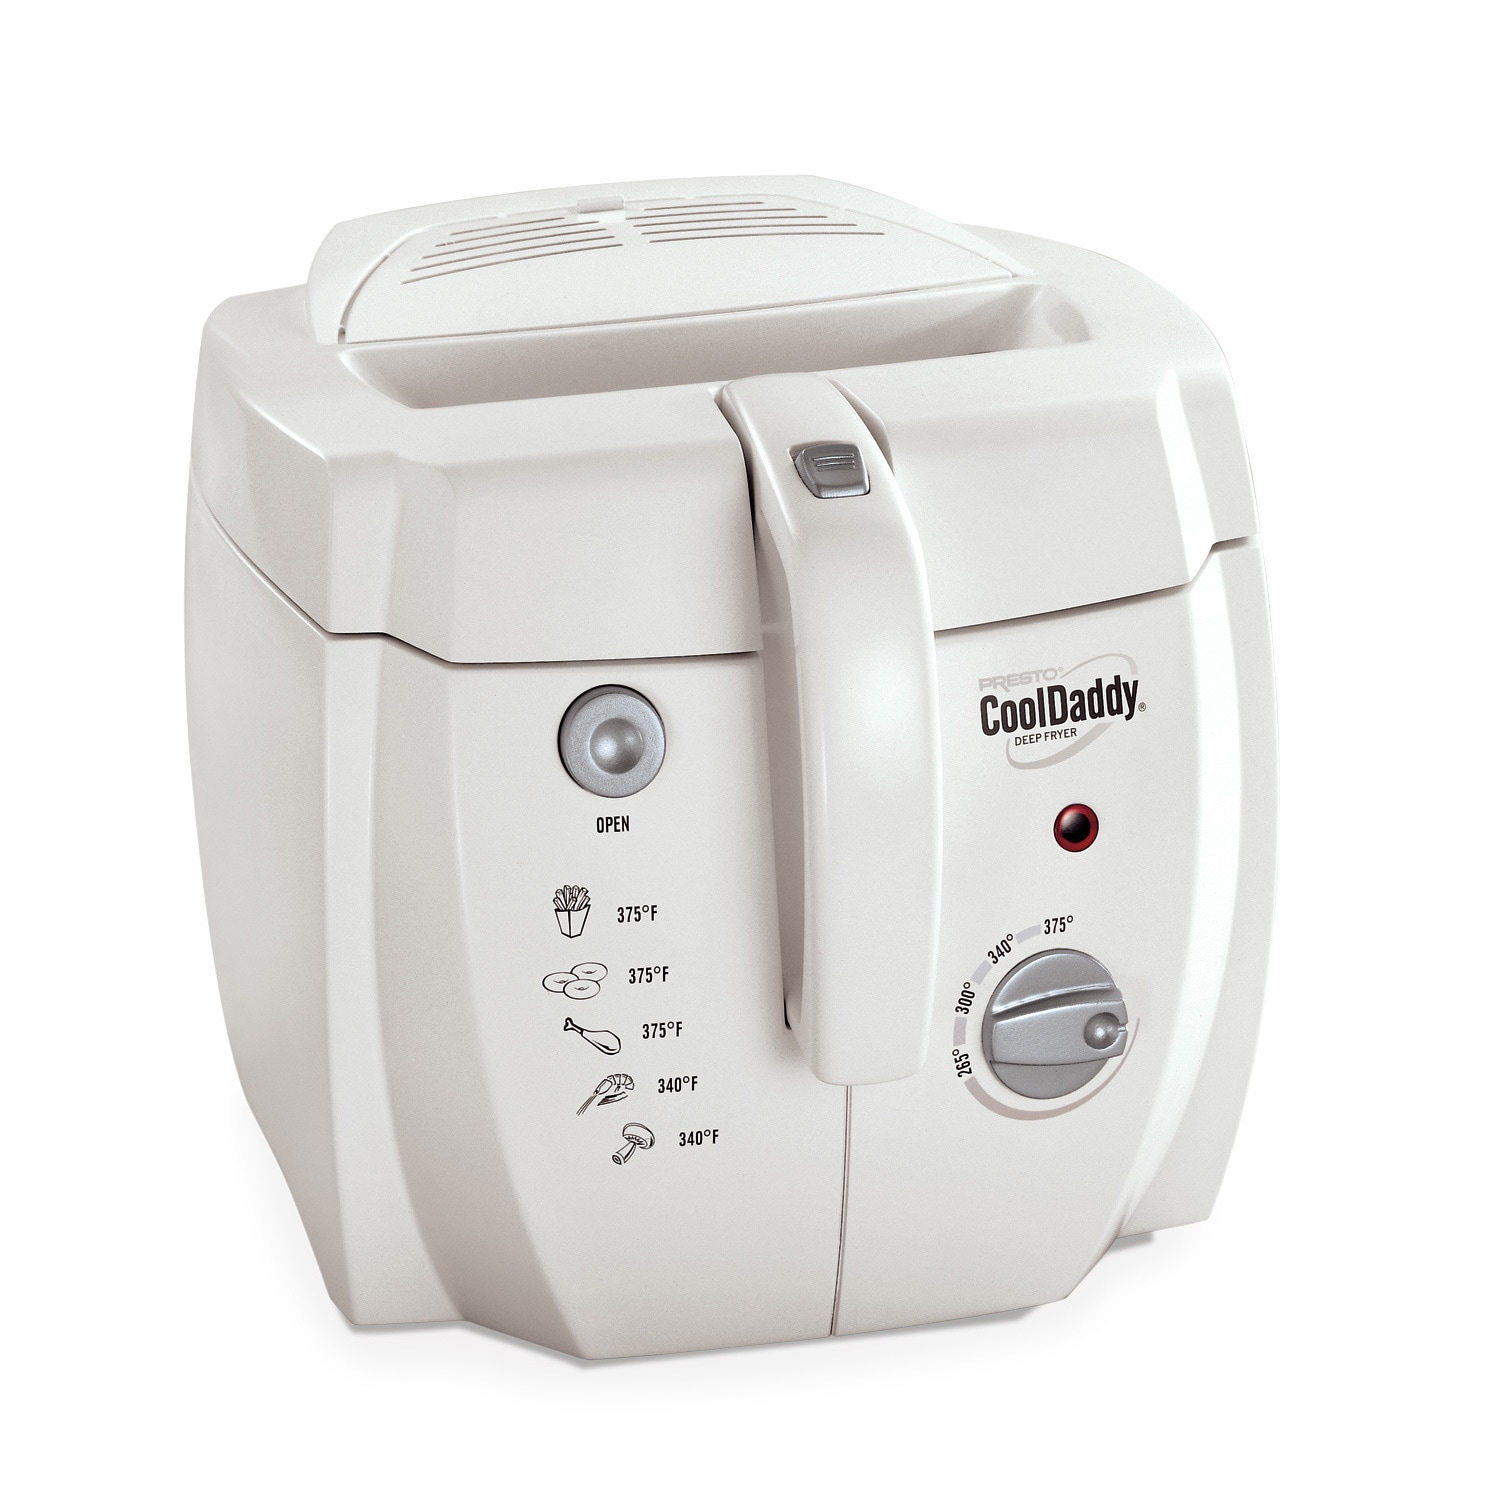 Presto Cool Daddy Deep Fryer, White